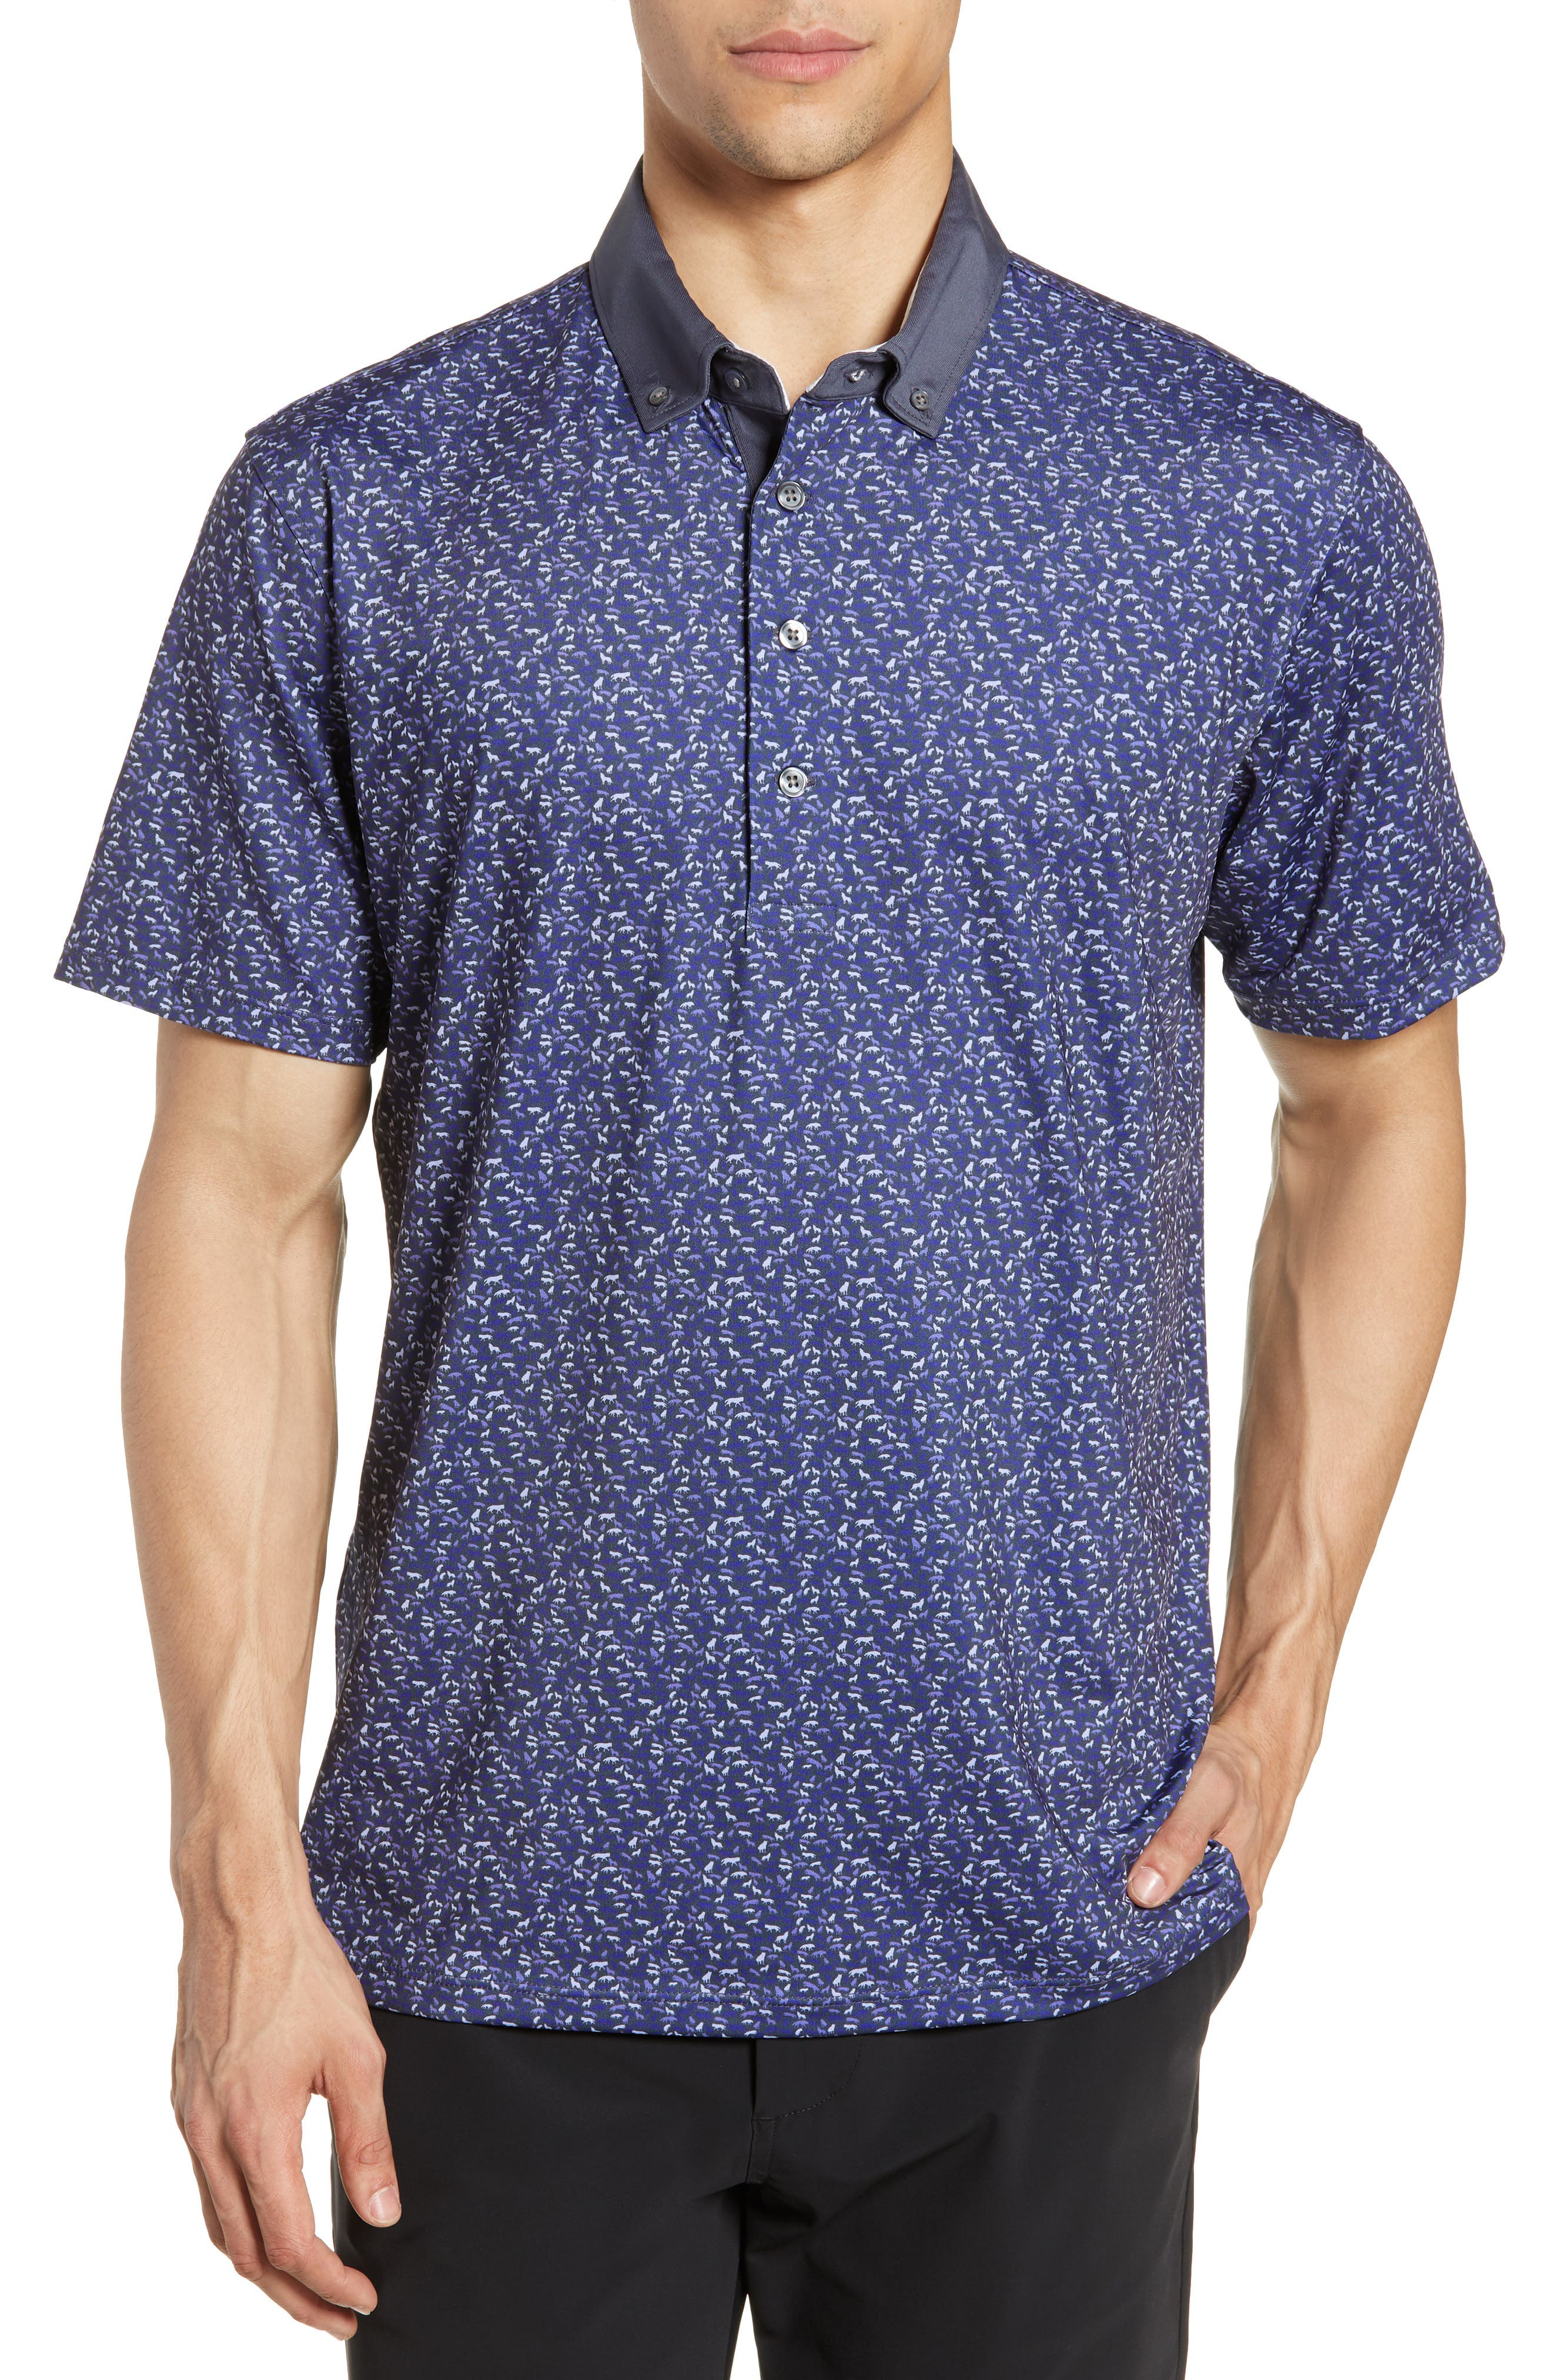 GREYSON, Wolfpack Technical Polo, Main thumbnail 1, color, SWALLOW/ DOVE